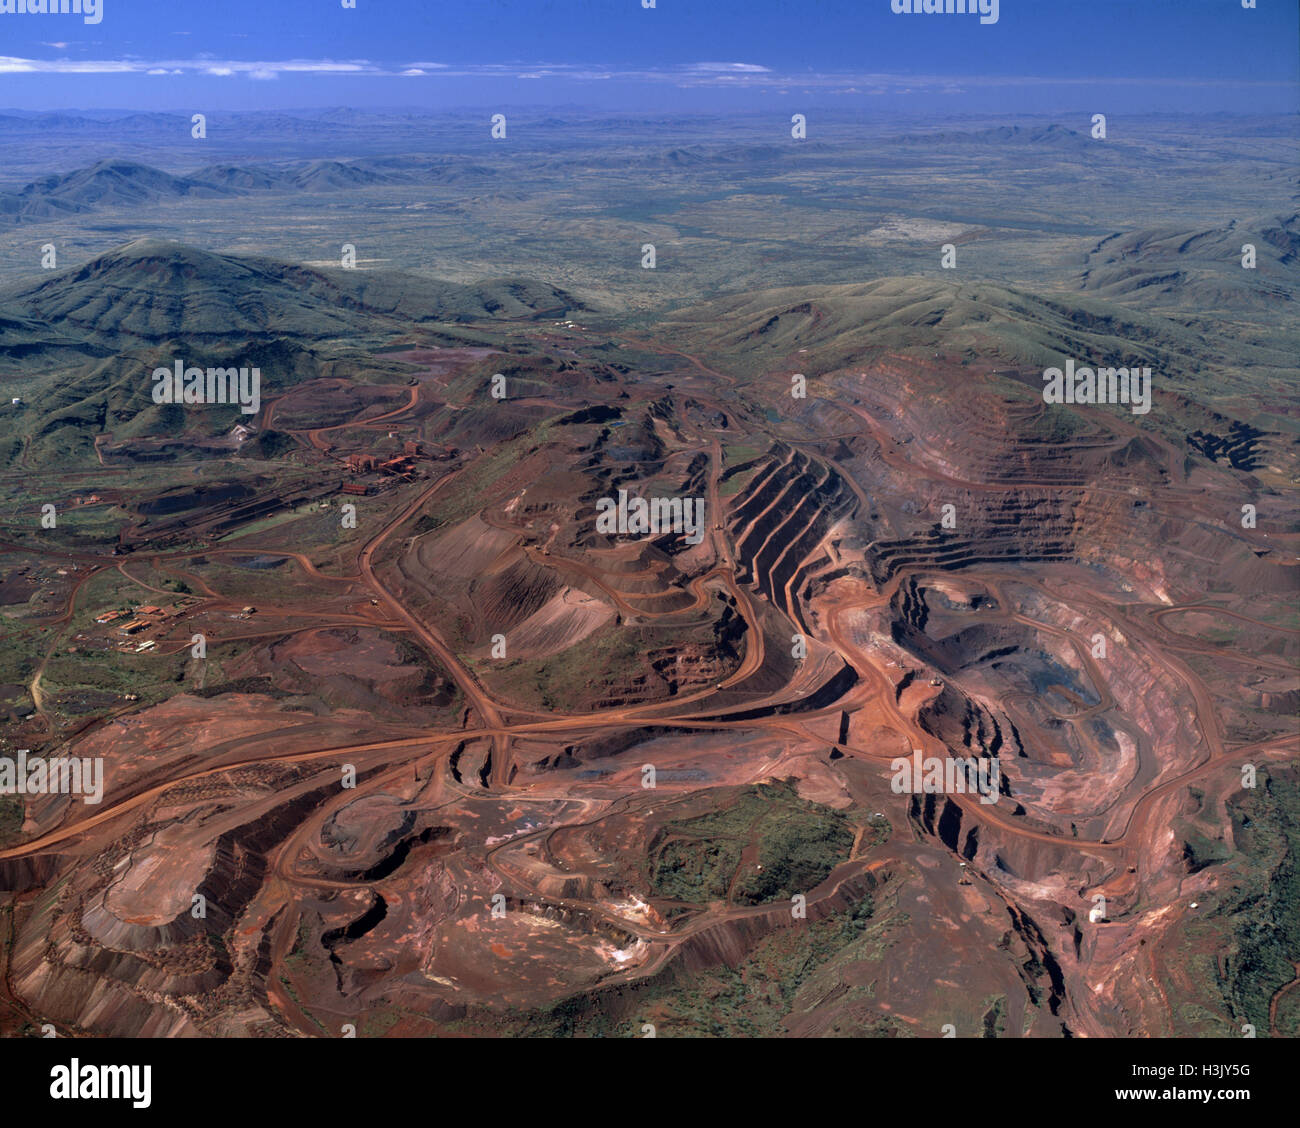 cn best price iron ore mining On friday, iron ore with 58% iron content was selling for us$3850 a ton versus the benchmark 62% iron-content price of us$6750 a ton, according to s&p global platts, a price-information provider.